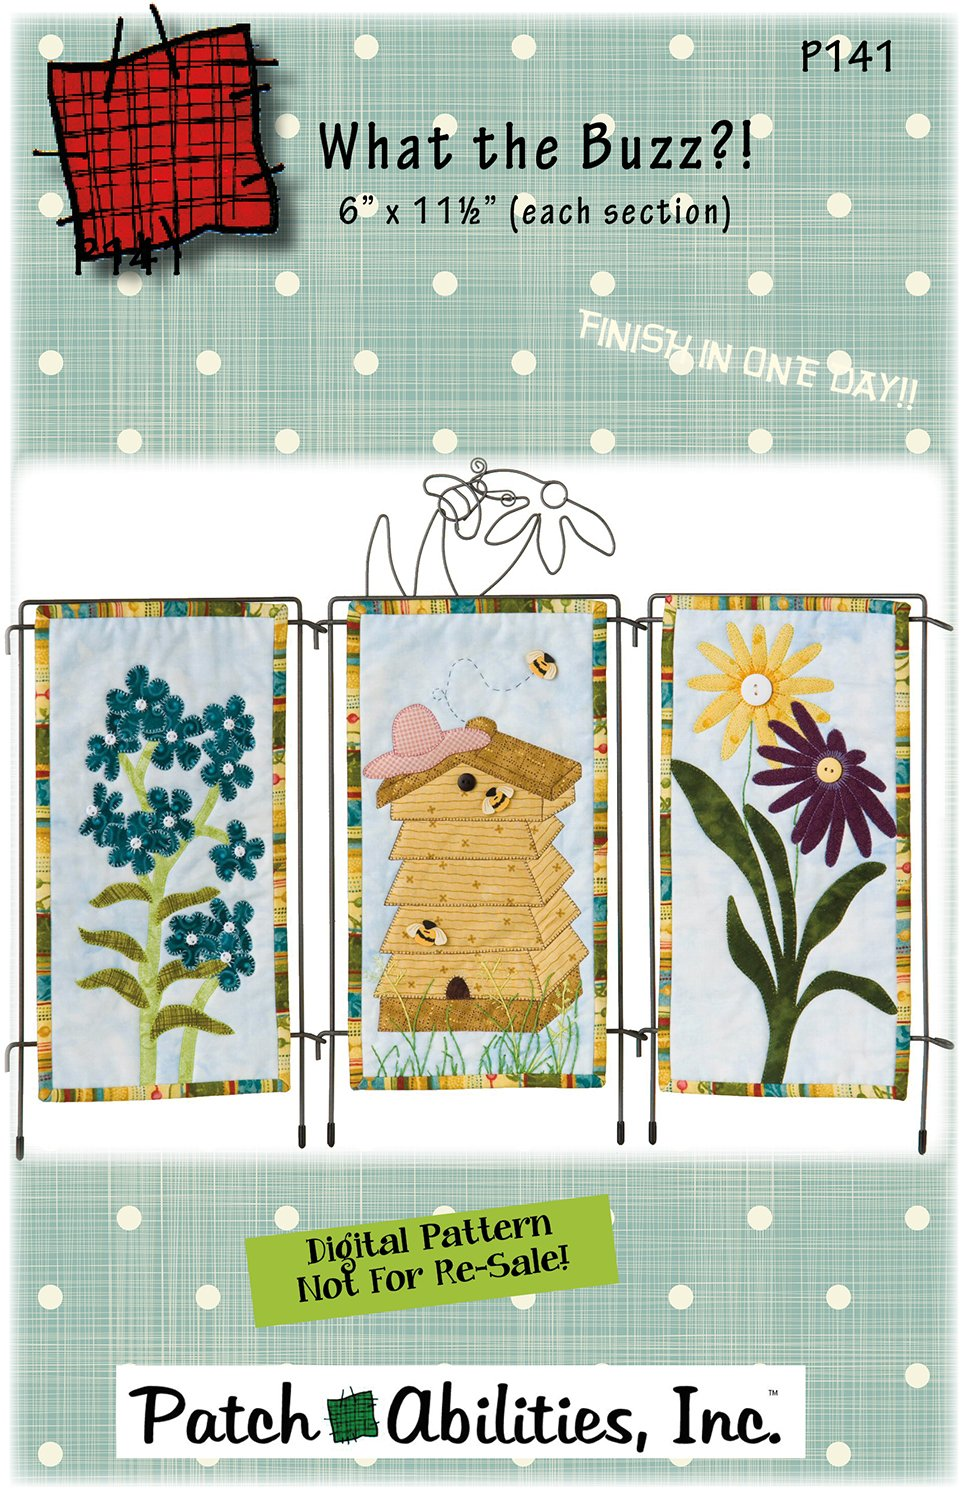 P141 What the Buzz?! DIGITAL DOWNLOAD PATTERN